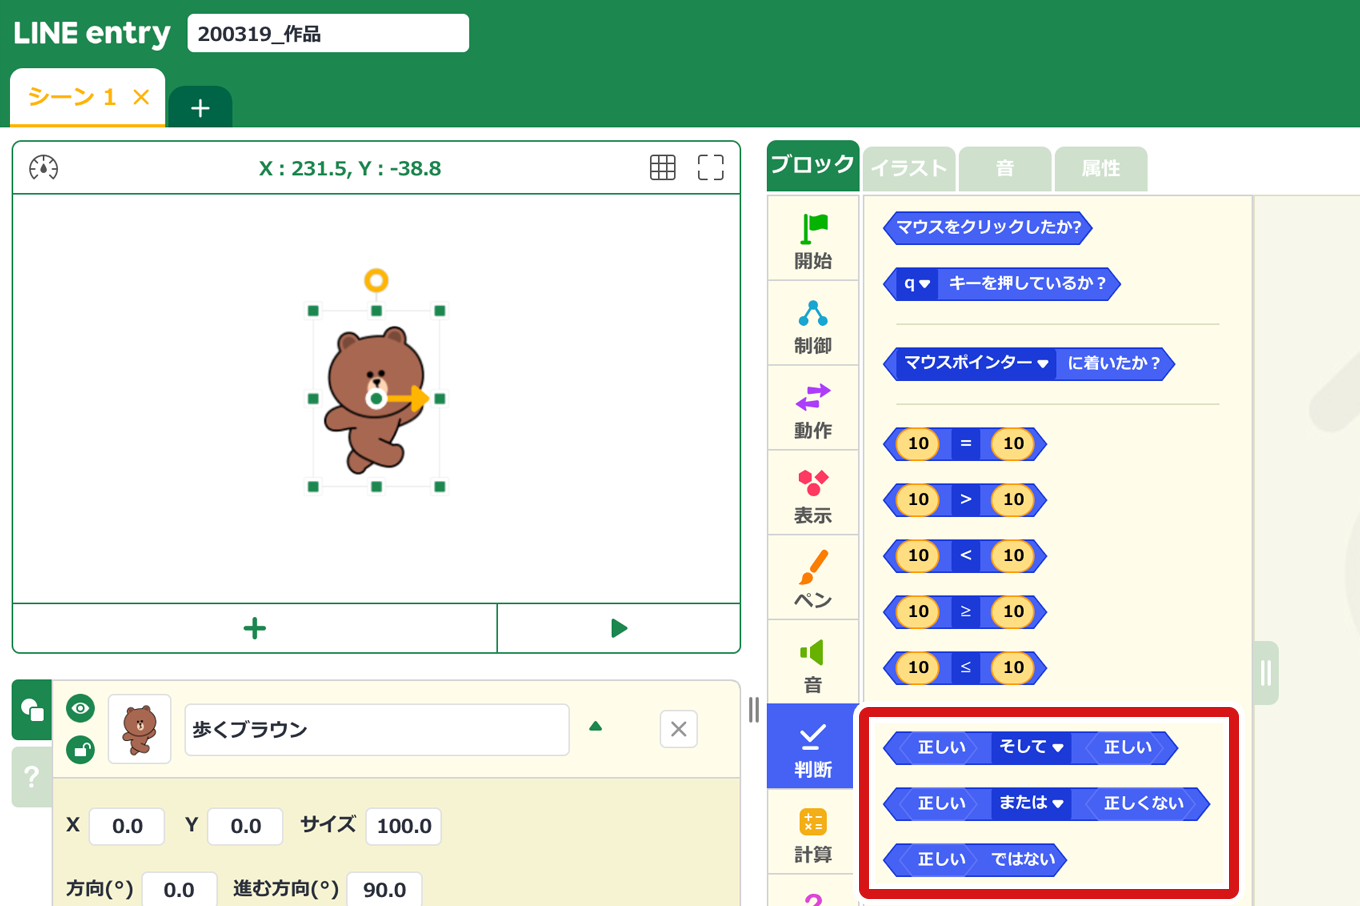 ScratchとLINE entryの違い